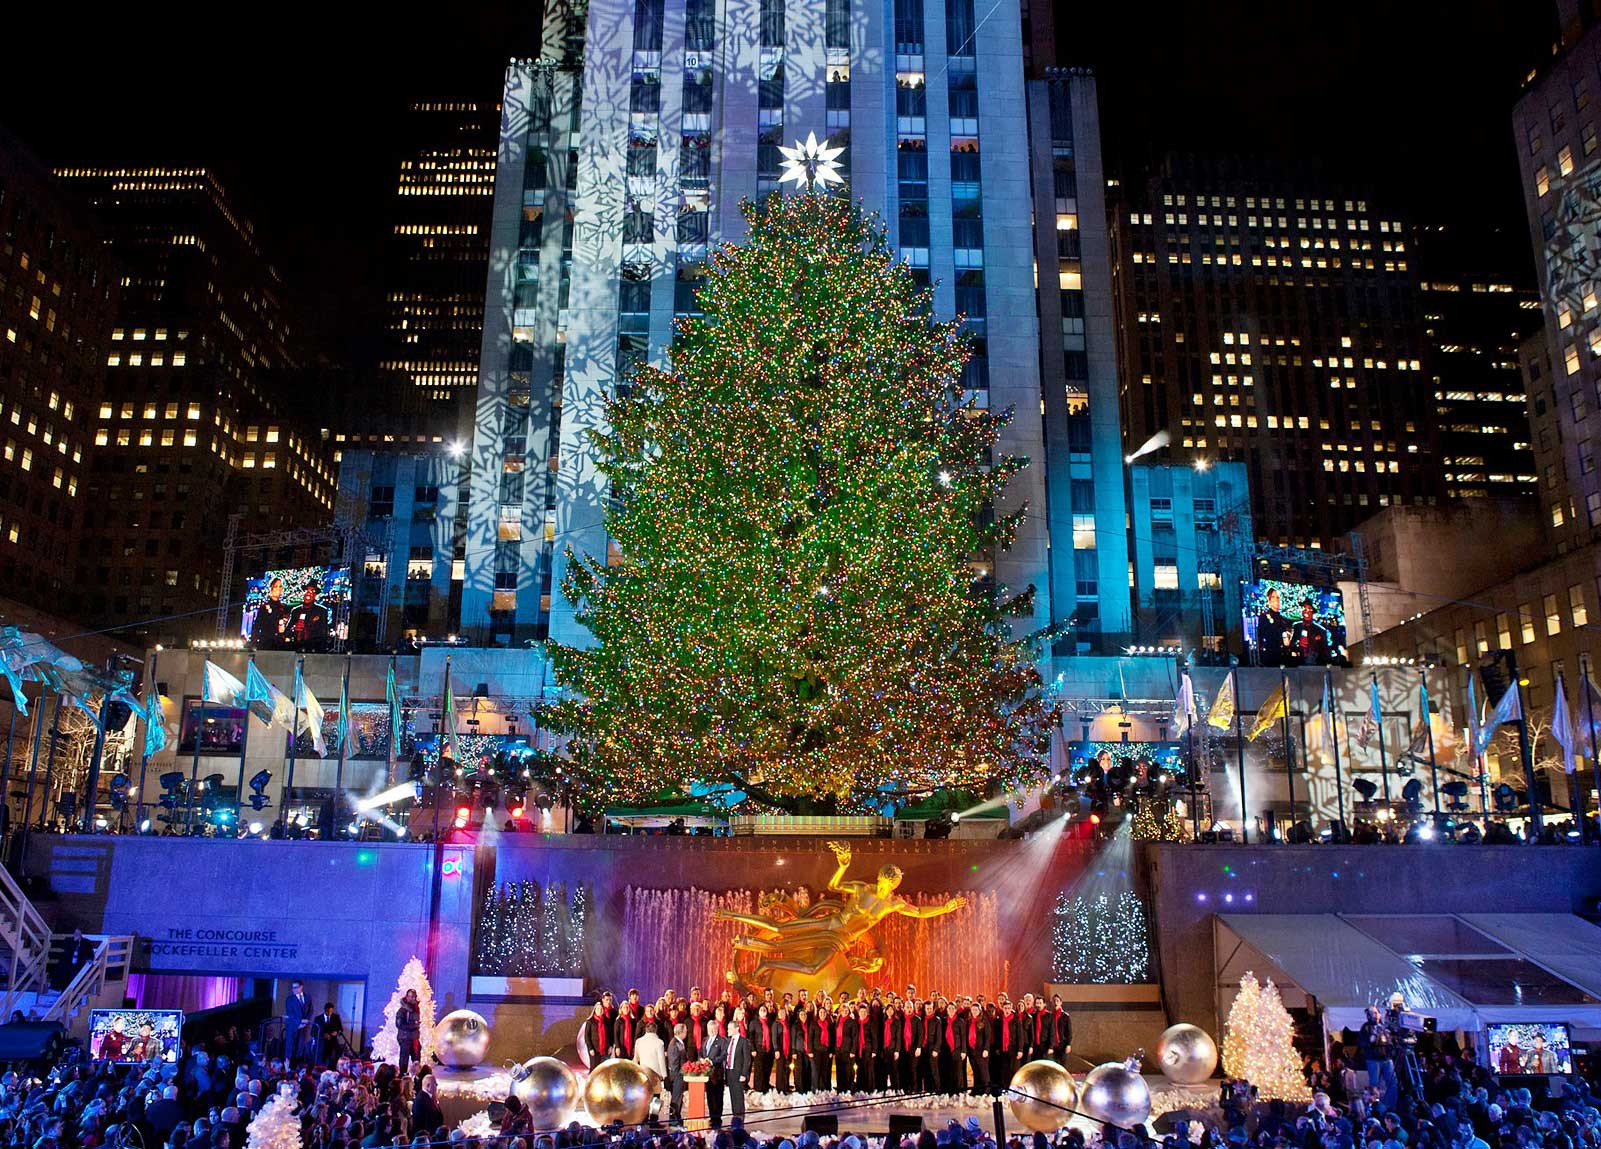 The Best Ideas for Rockefeller Christmas Tree Lighting 2019 - Home DIY Projects Inspiration ...